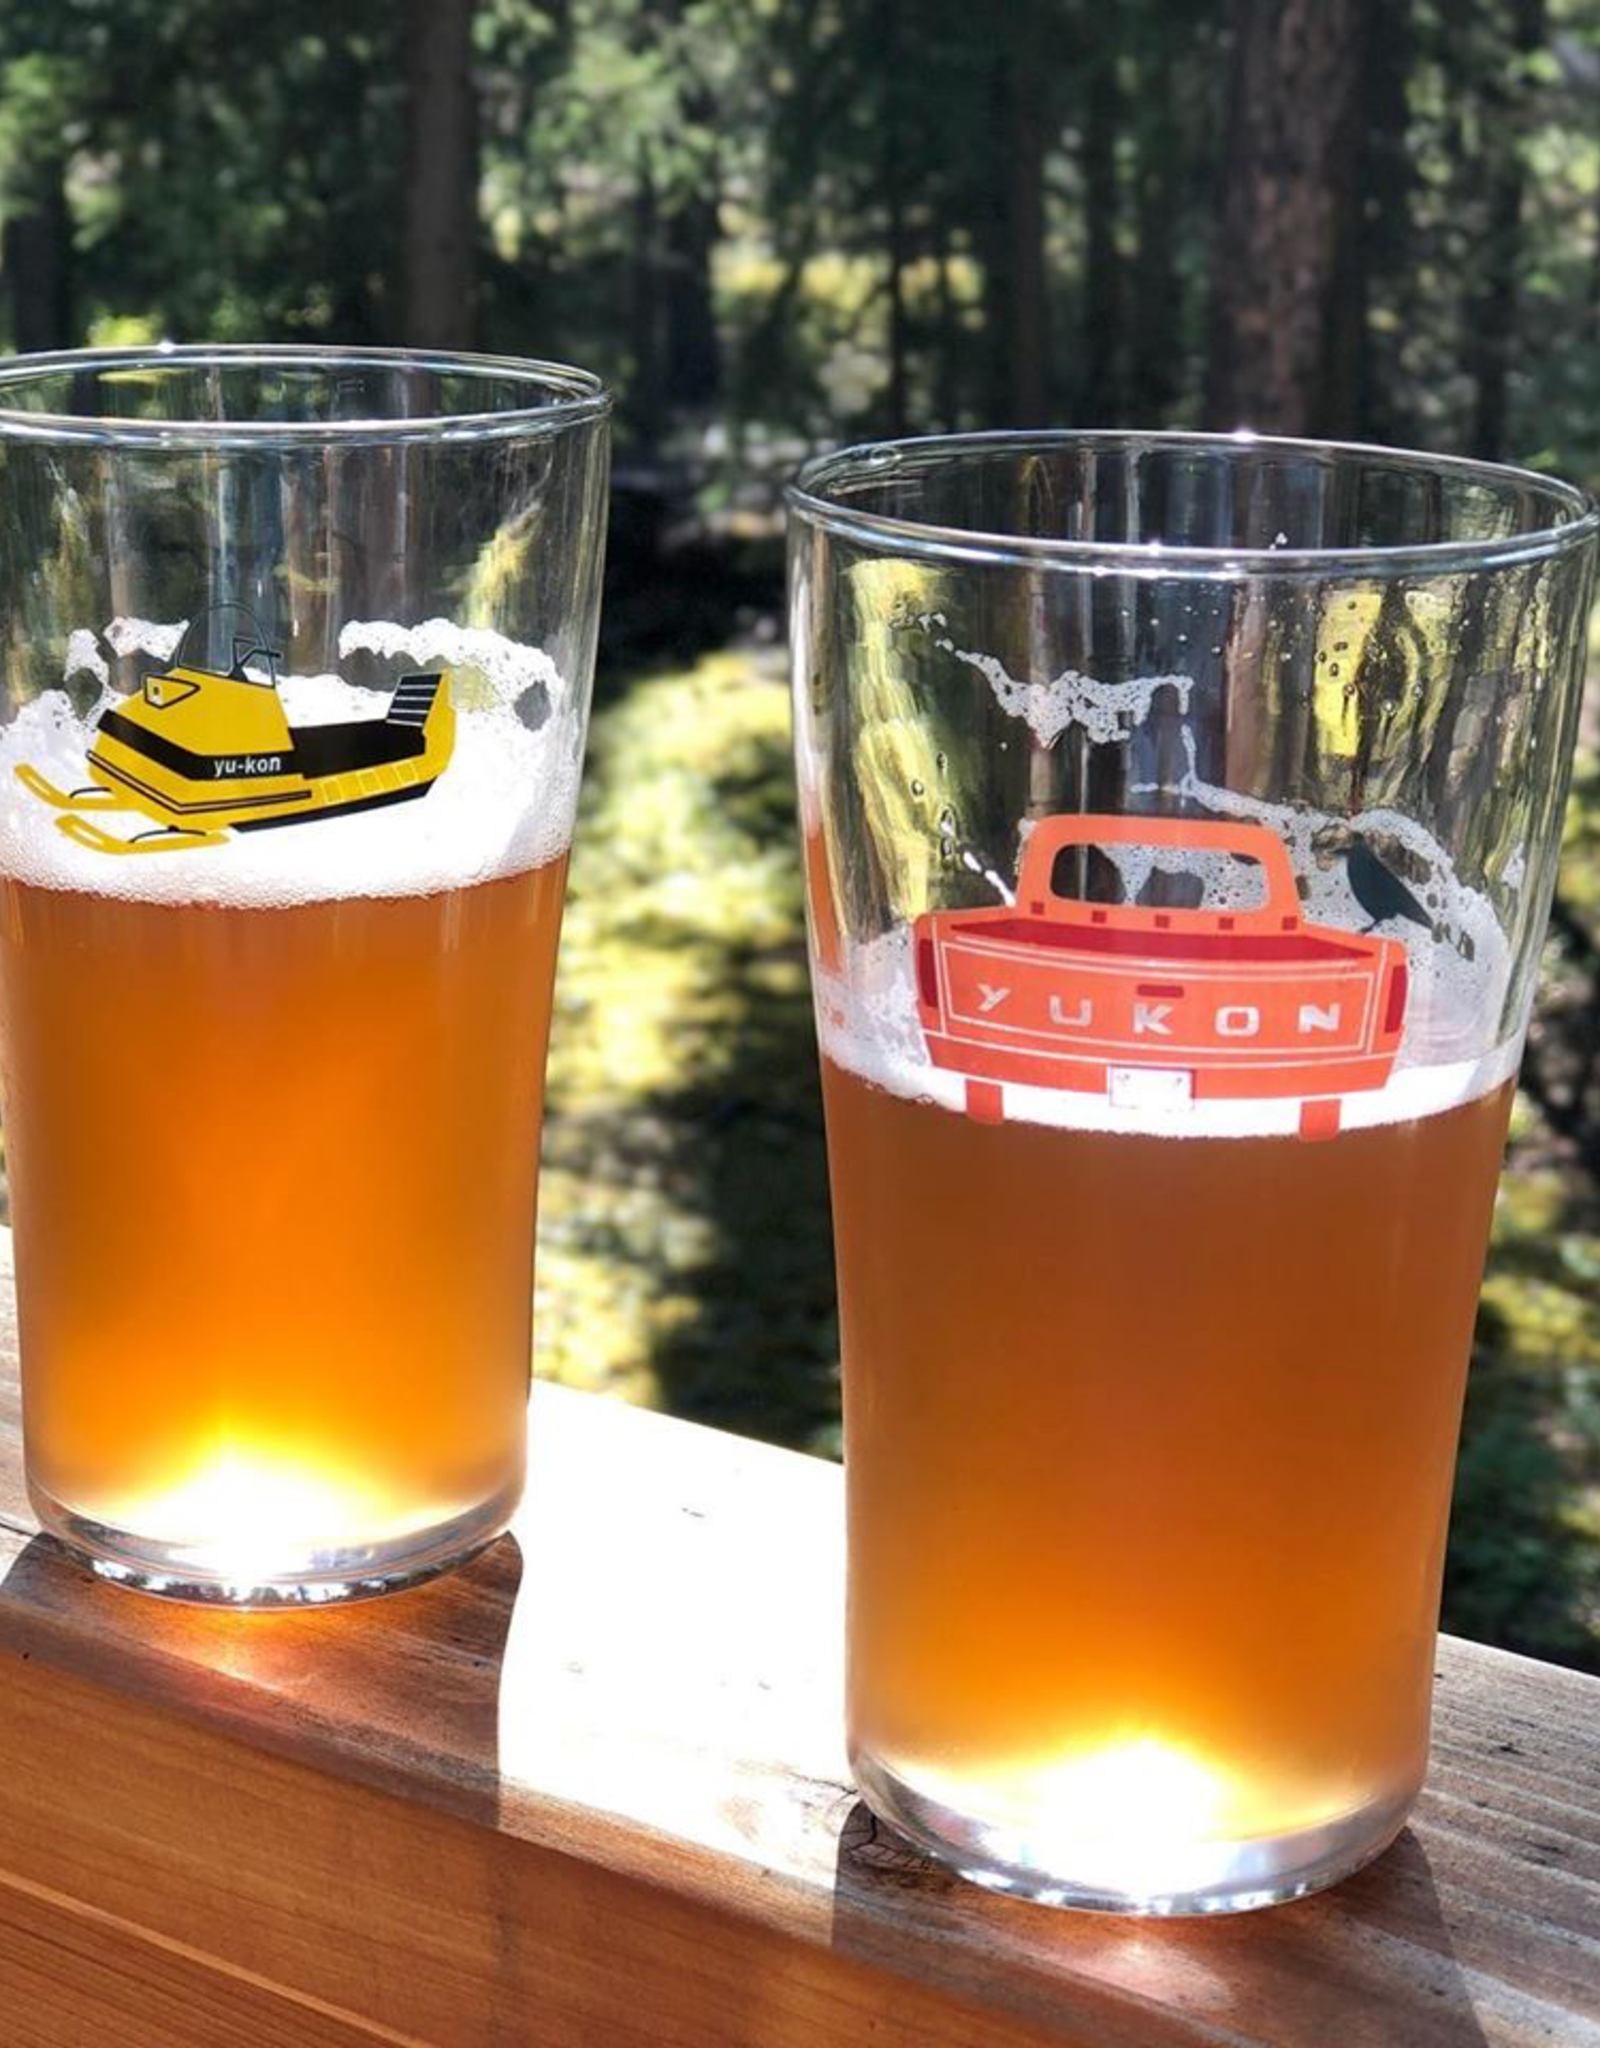 Yukon Truck Beer Glass